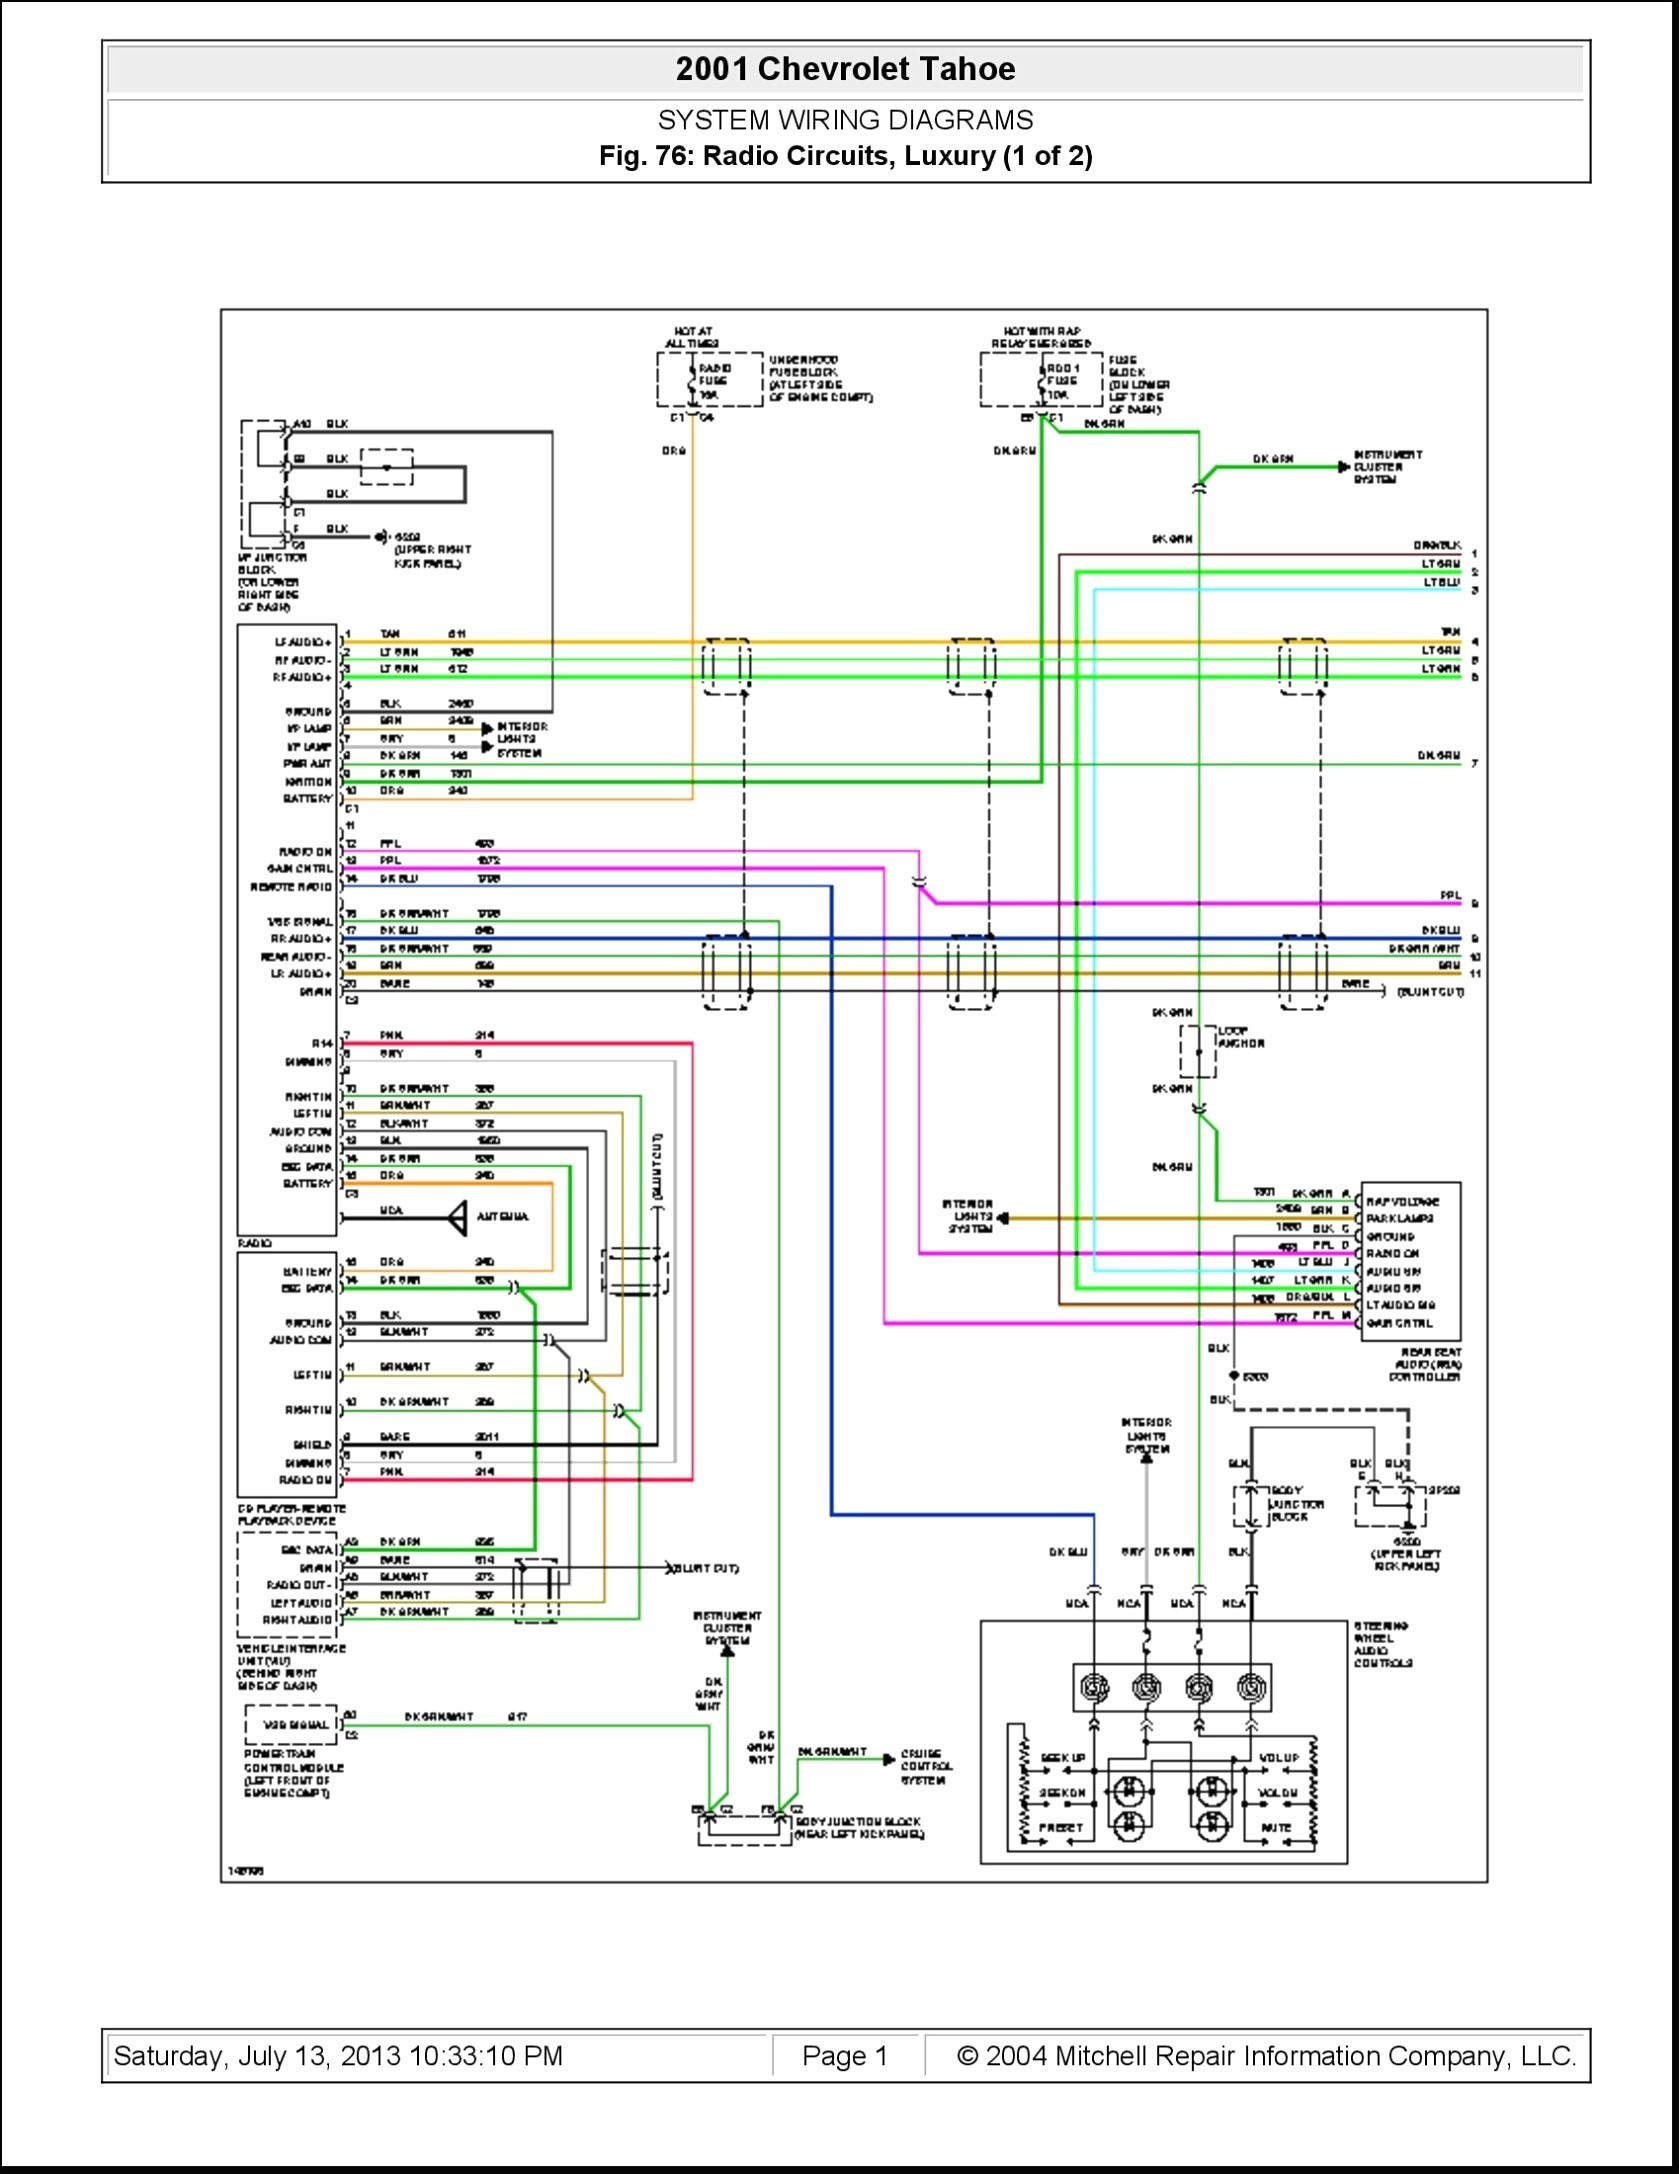 2005 Chevy Impala Wiring Diagram 2018 7 2002 Chevy Trailblazer Stereo Wiring Harness Motor At 2004